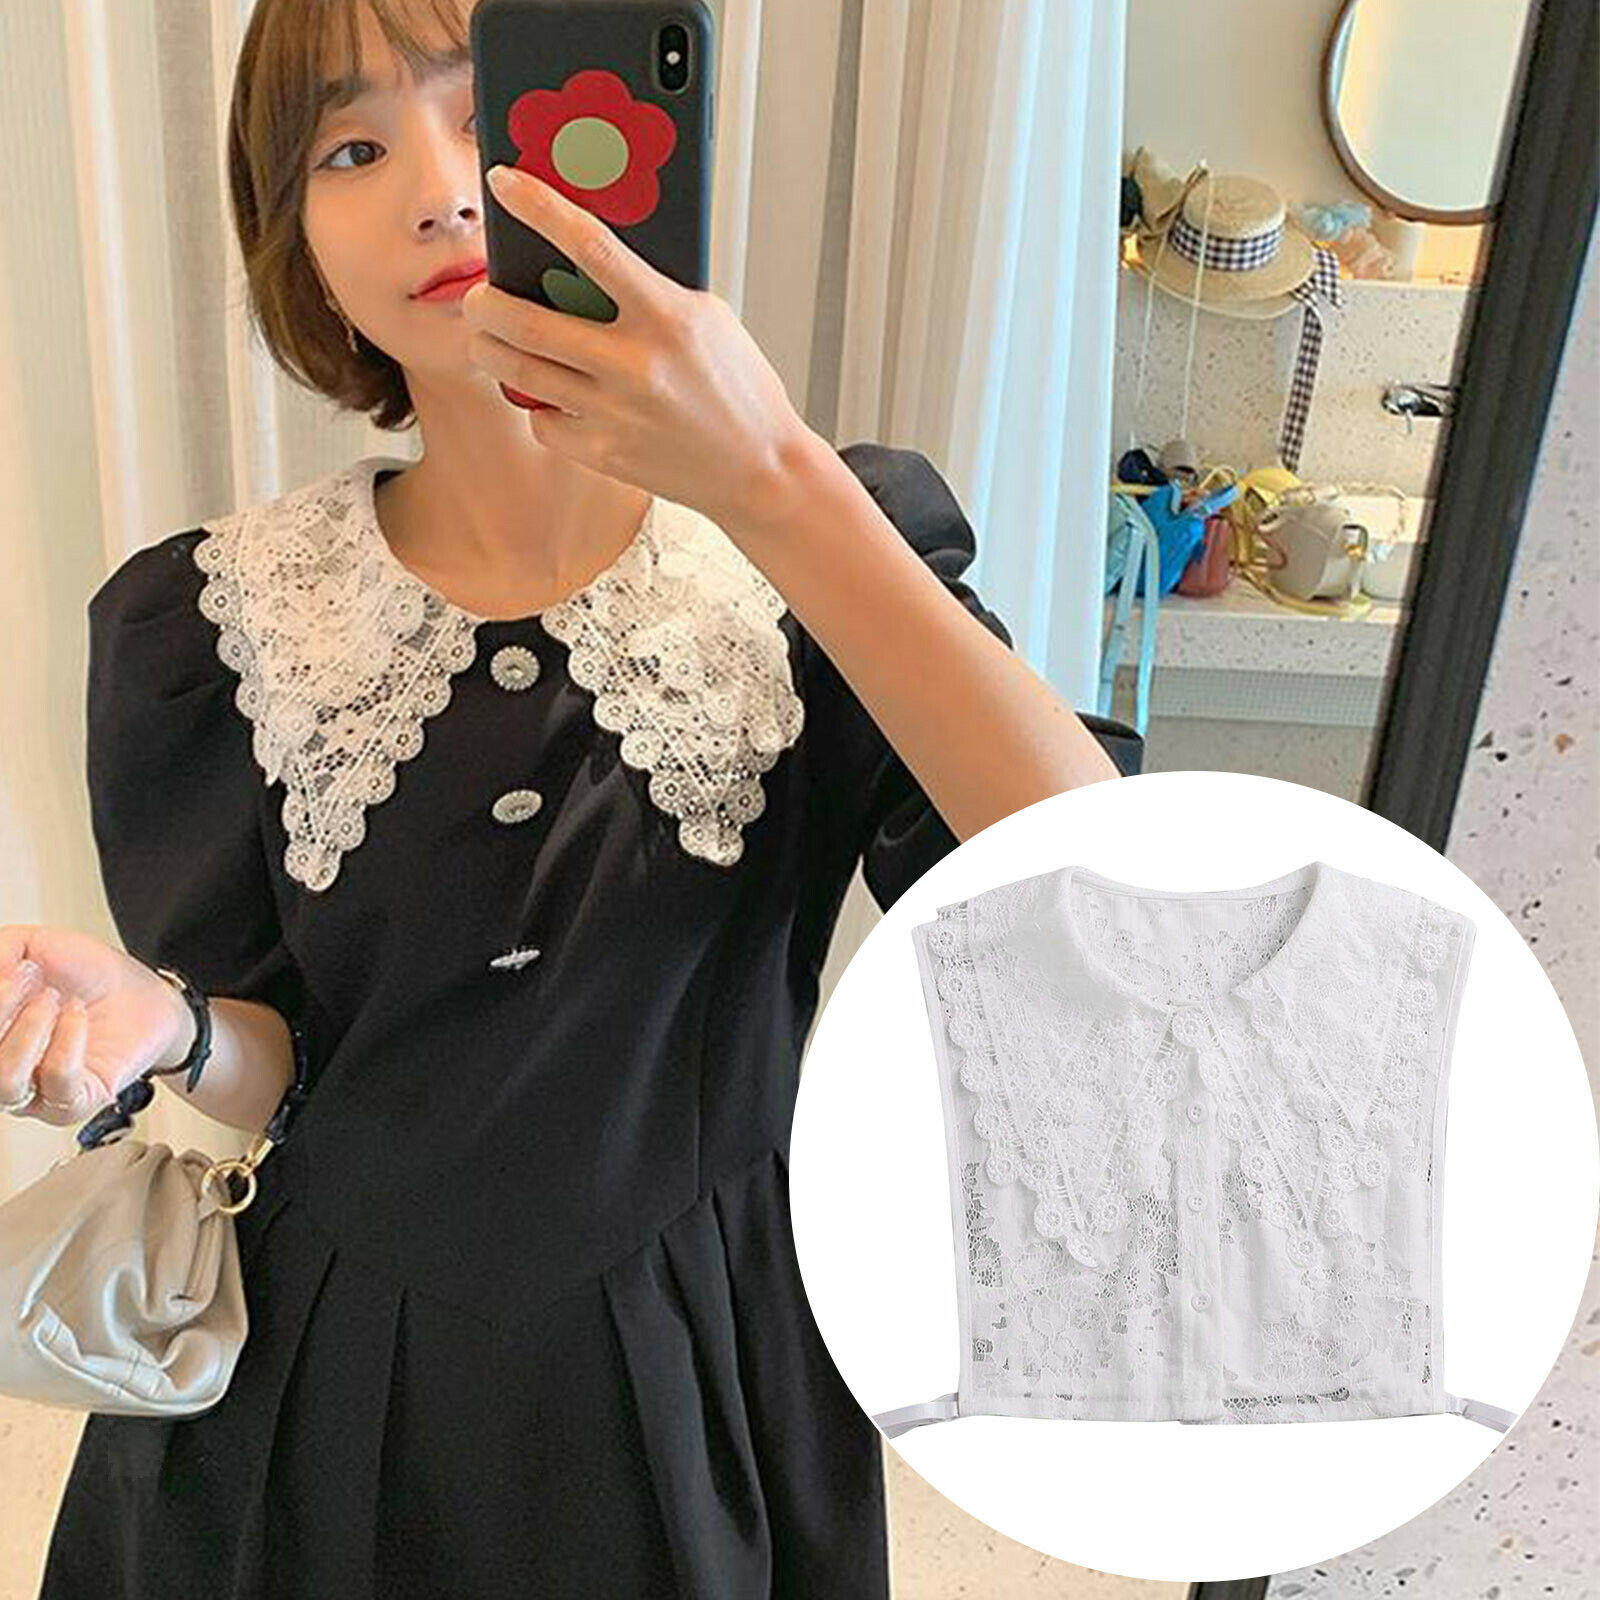 Ladies embroidery lace fake collar necklace detachable half shirt blouse